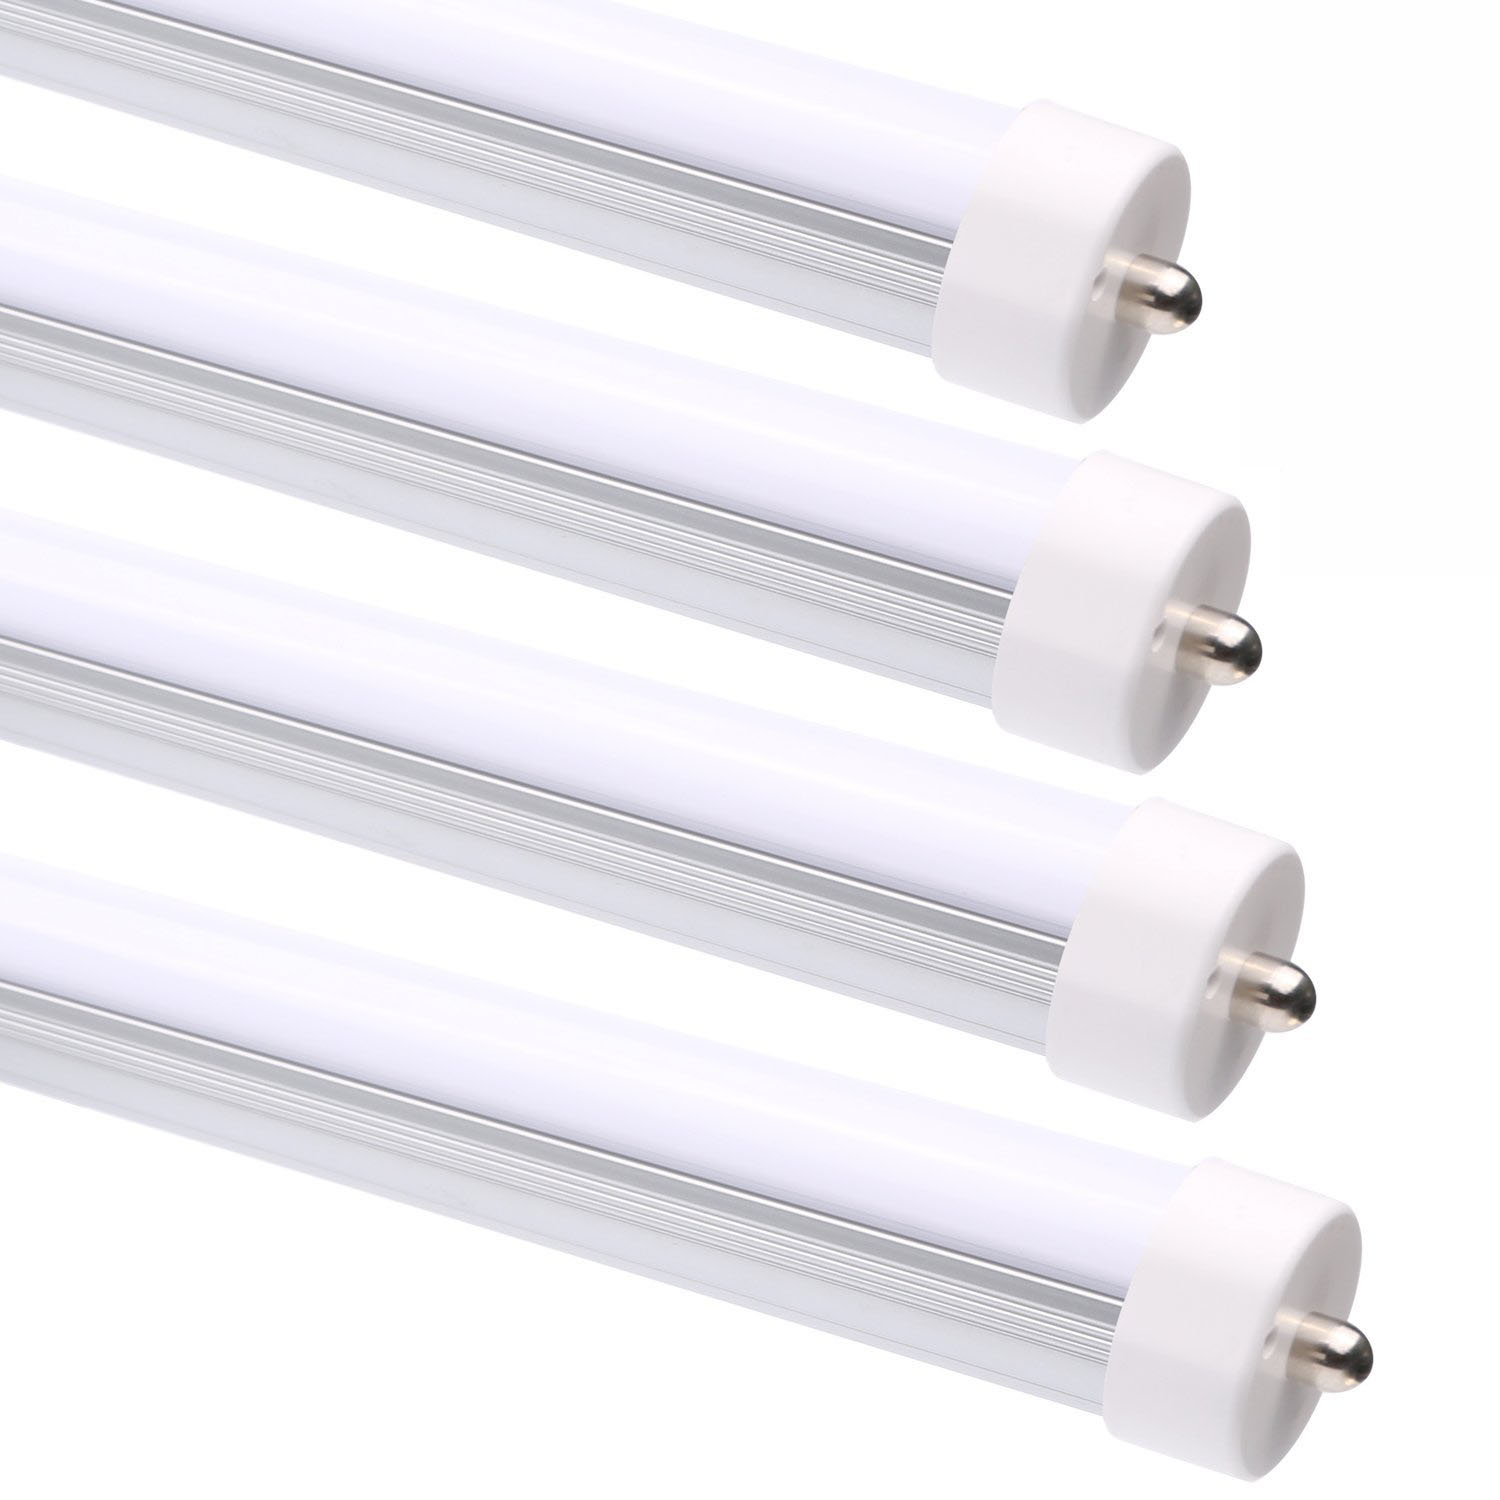 Led Light Fixture Too Bright: 8FT T8 T12 FA8 40W Single Pin LED Tube Light Fixture Clear